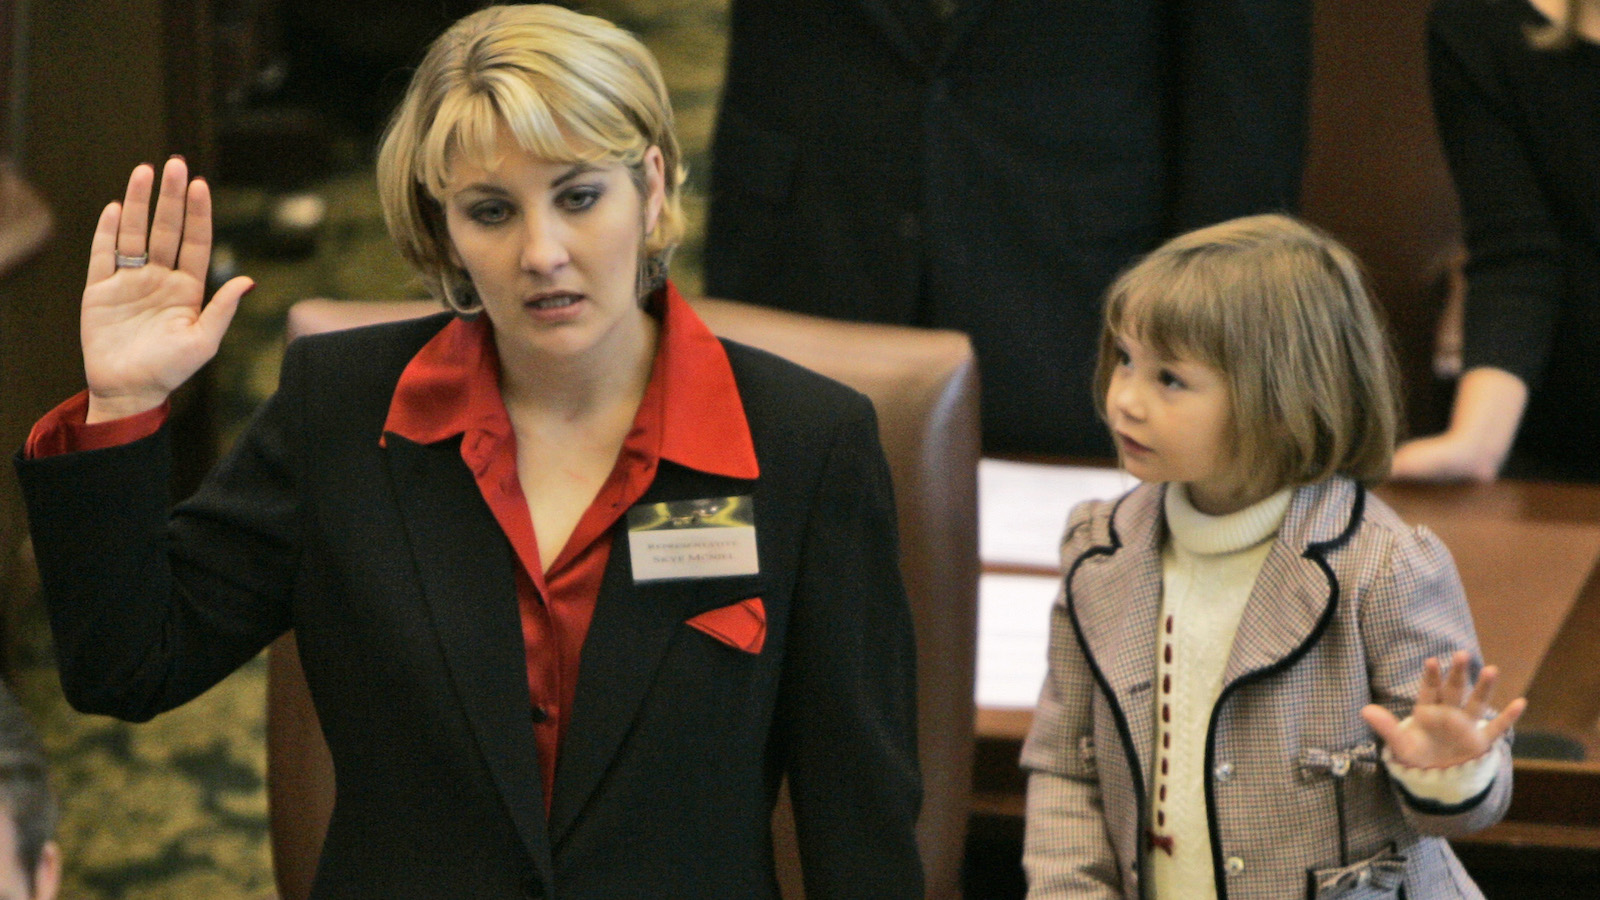 Paike Marie McNiel, right, mimics her mom, newly elected Oklahoma state Rep. Skye McNiel, left, R-Bristow, as she takes her oath of office on the House floor at the state Capitol in Oklahoma City, Thursday, Nov. 16, 2006.